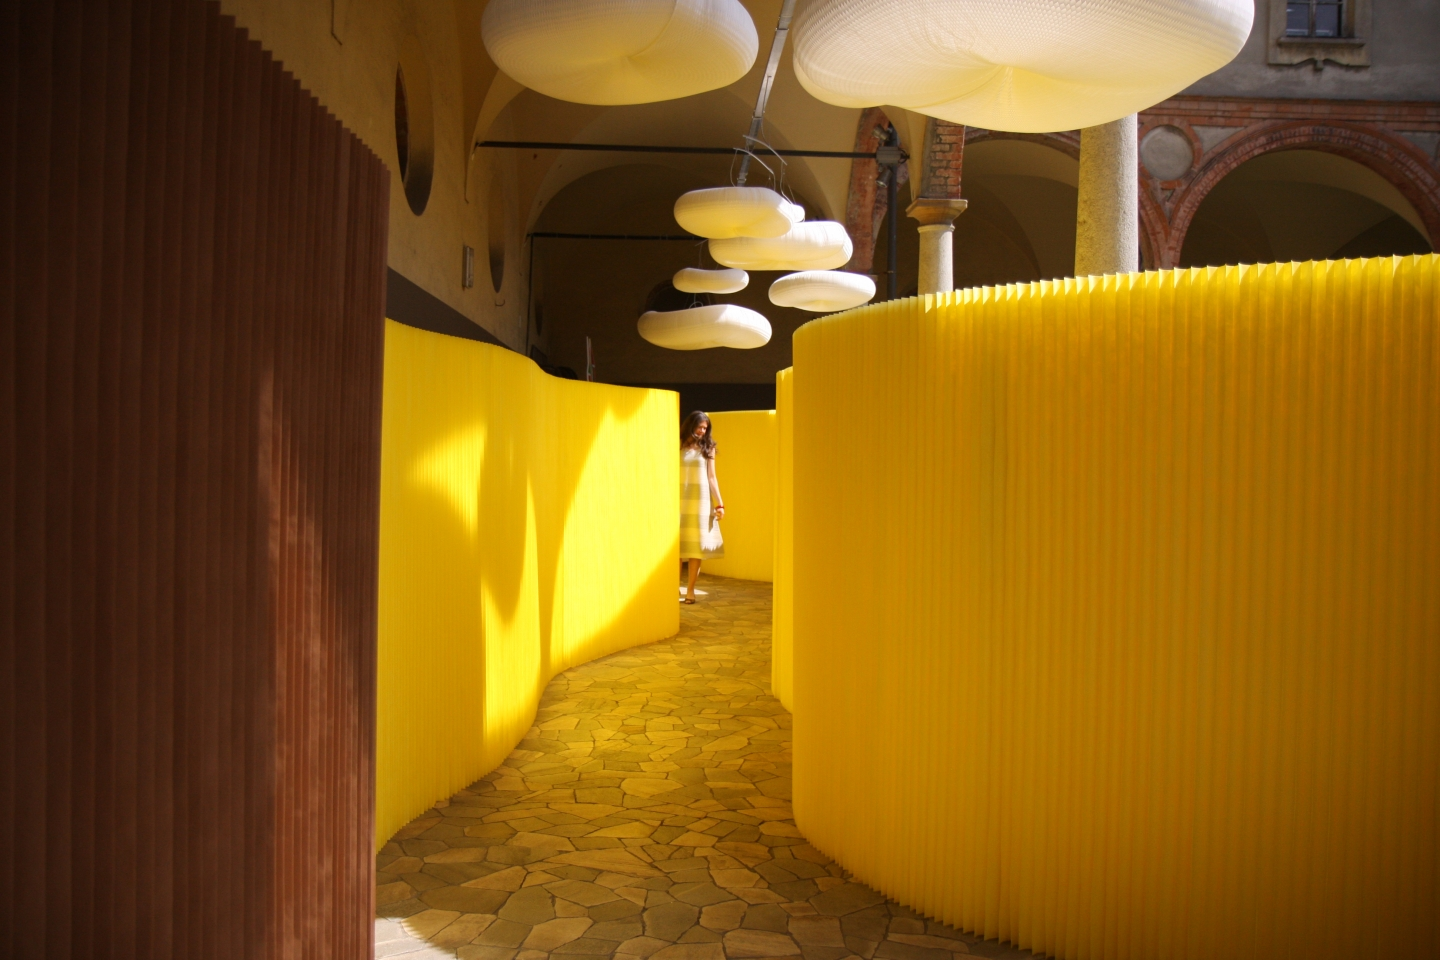 paper furniture by molo featuring room dividers in custom yellow, paper lighting